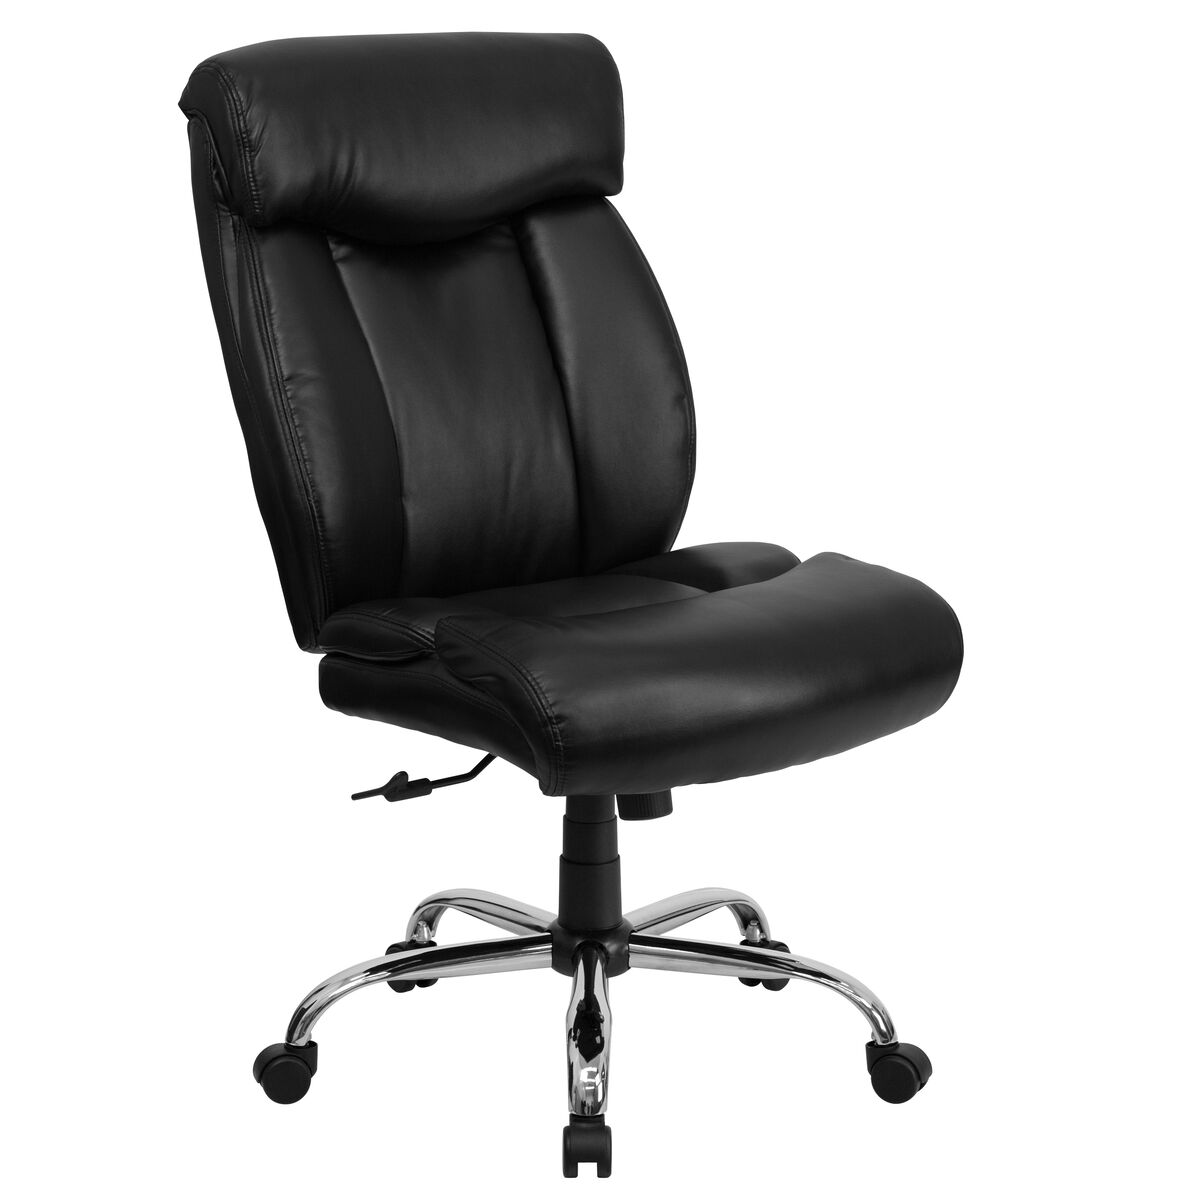 axton executive big and tall chair assembly instructions